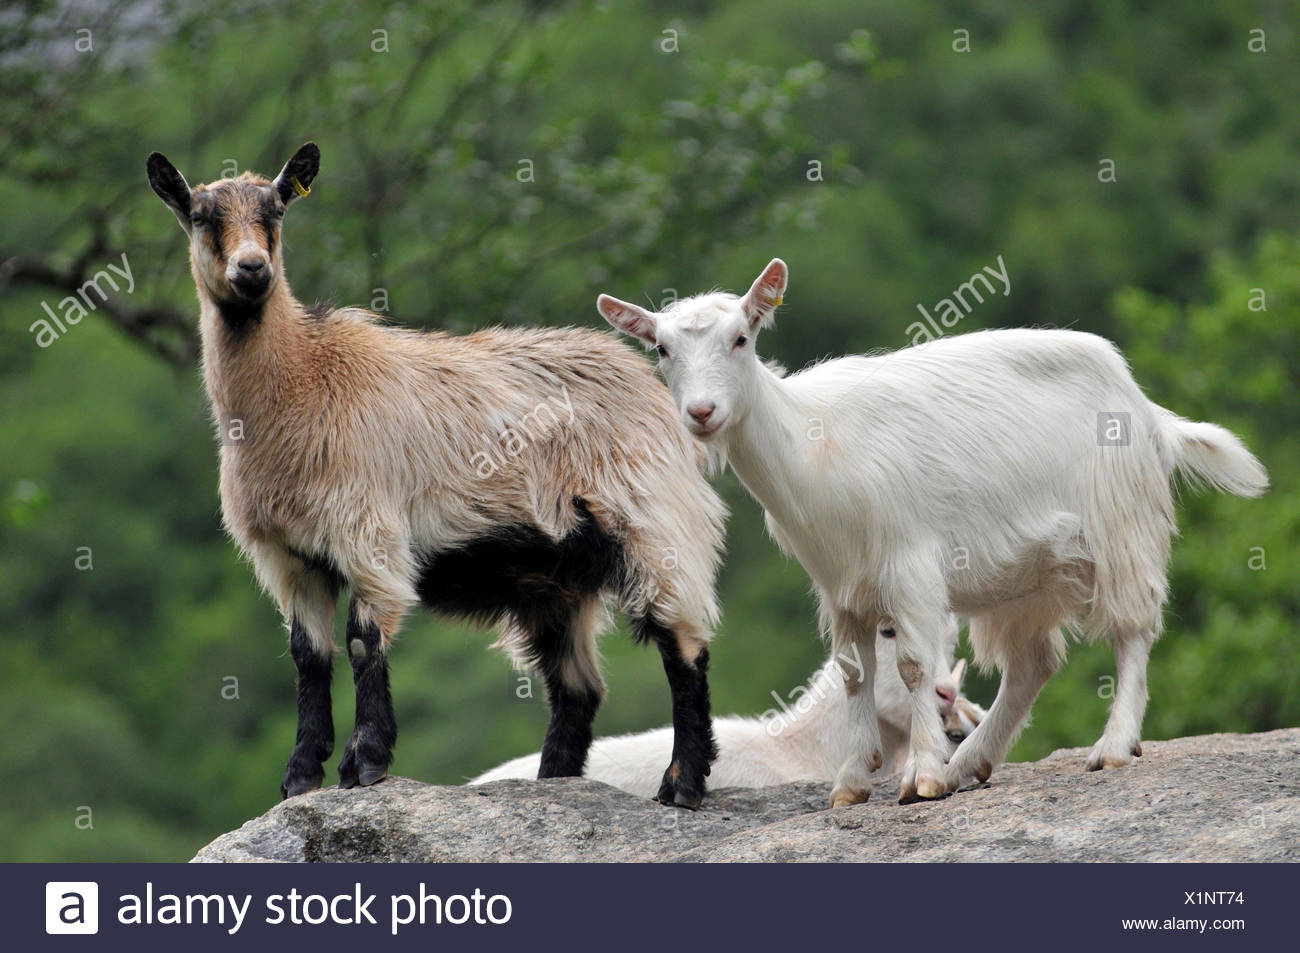 Domestic Goats, Briks Valley, Briksdalen, Norway - Stock Image